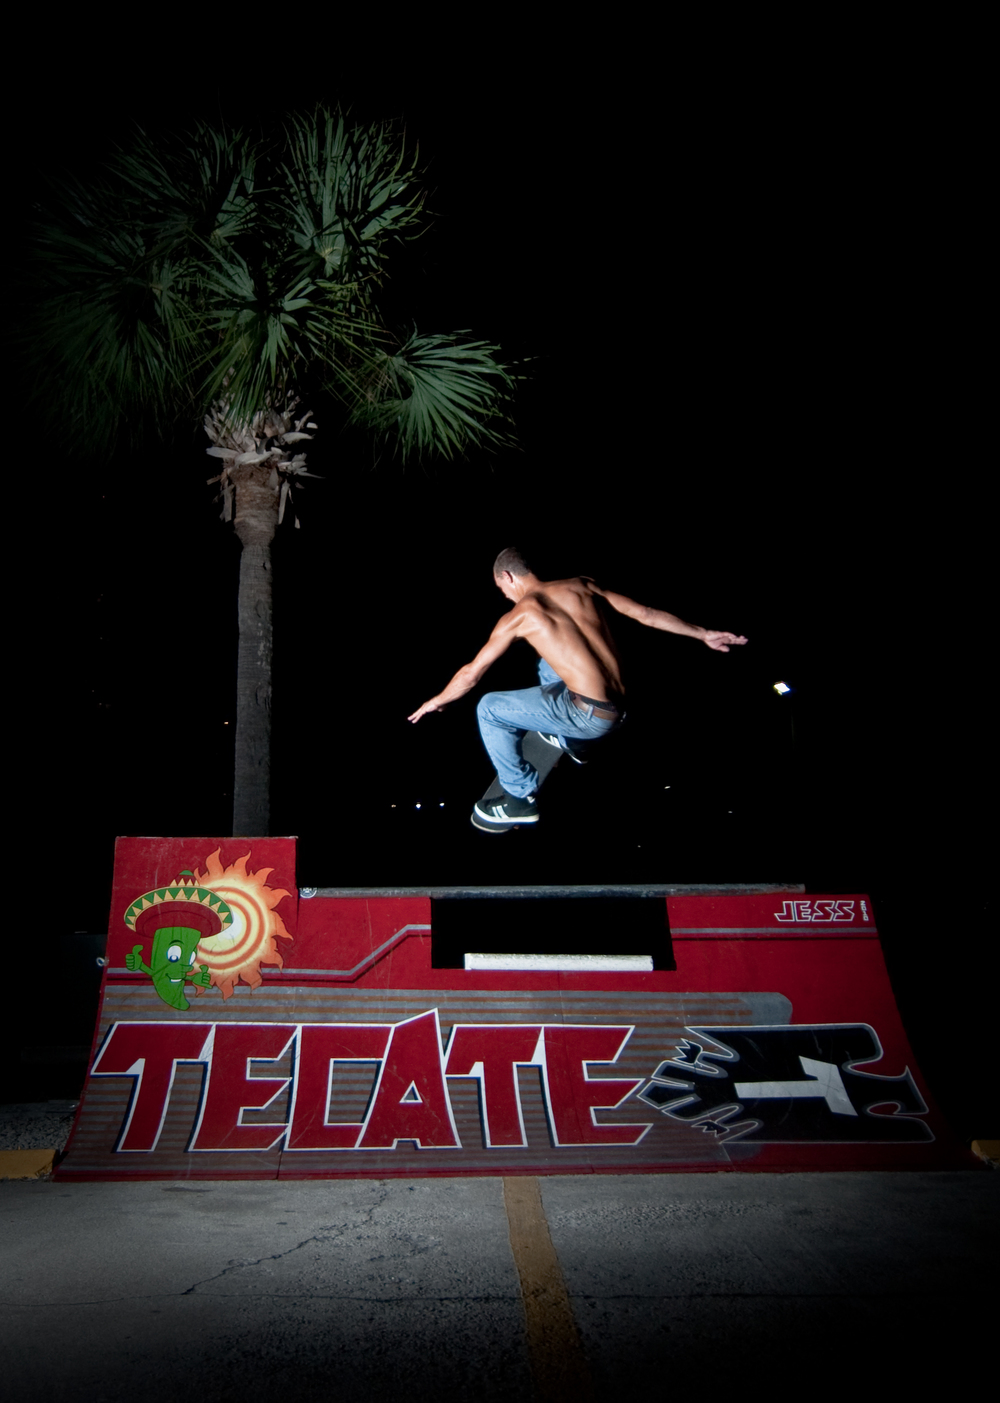 My first mural...Tecate skate ramp